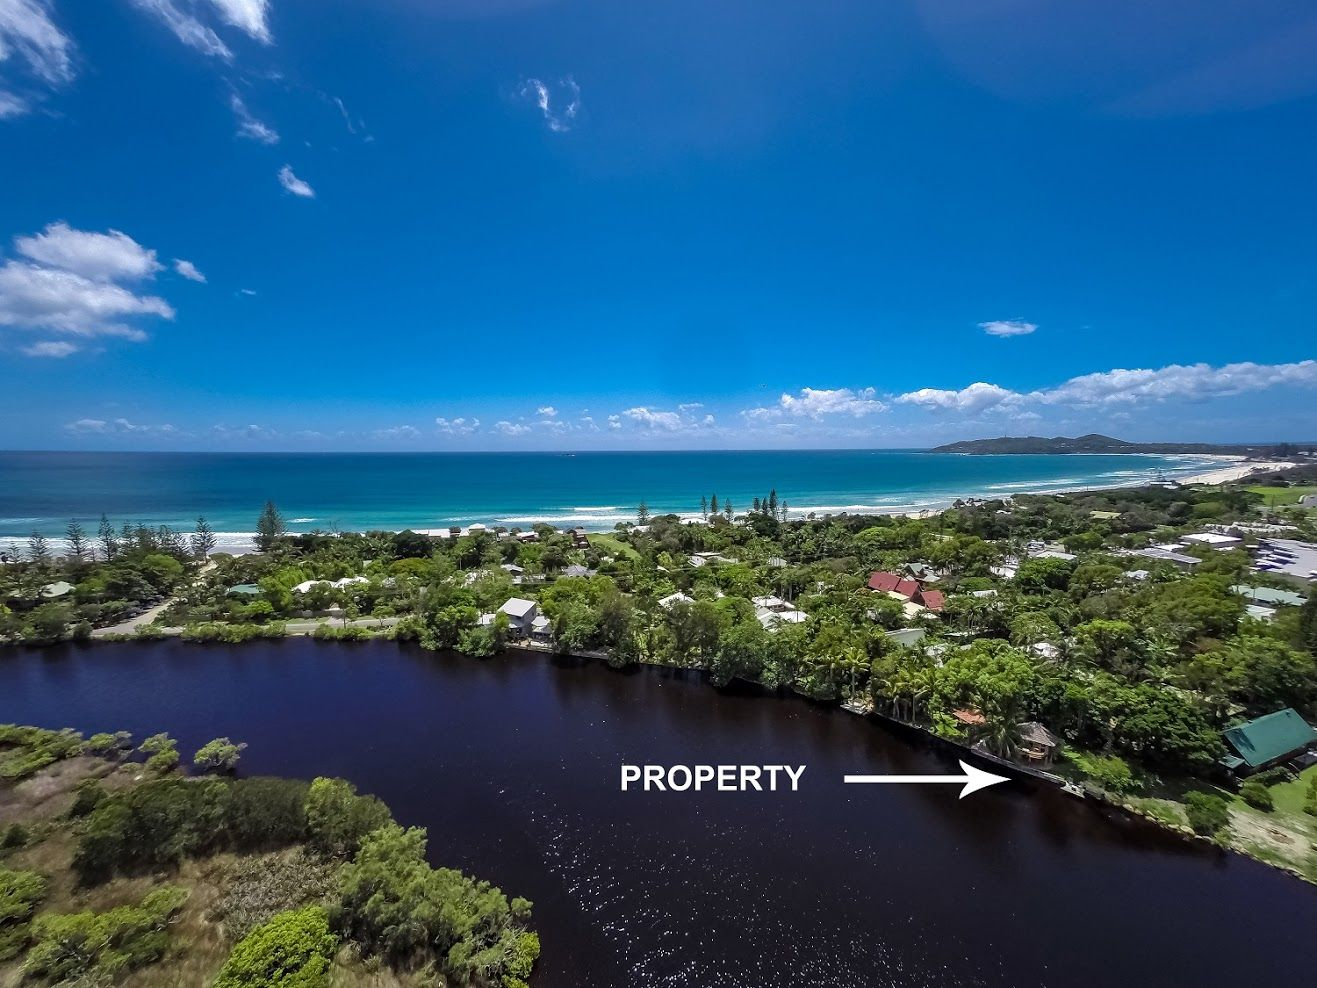 Property Report for 12 Giaour Street, Byron Bay NSW 2481